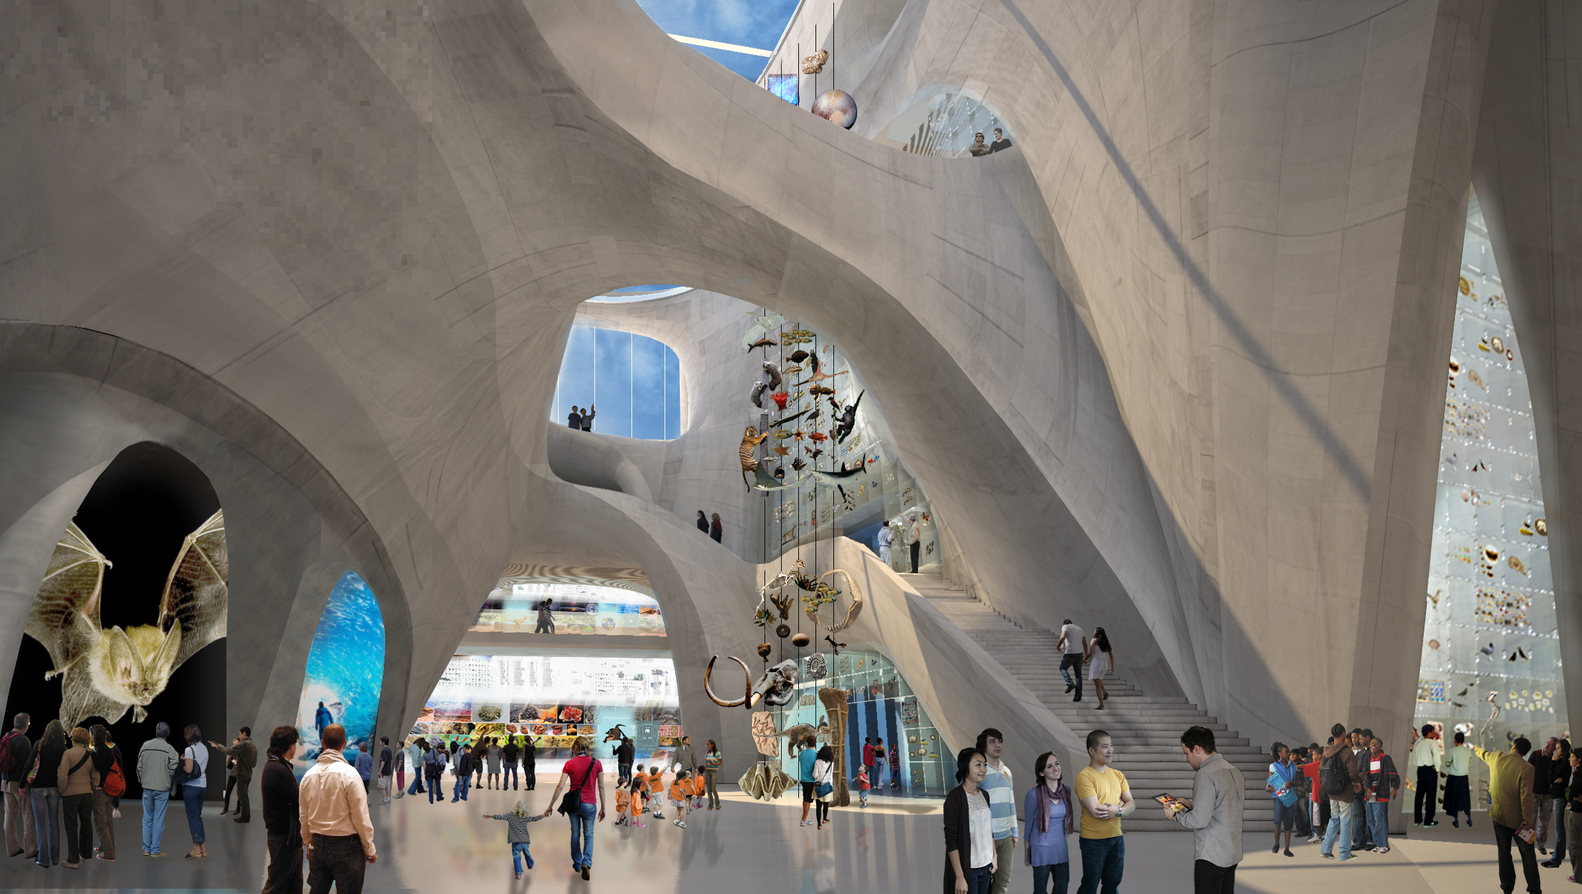 4._Proposed_Interior_-_Gilder_Center_Central_Exhibition_Hall_-_View_East_From_Entrance_Into_Building.jpg